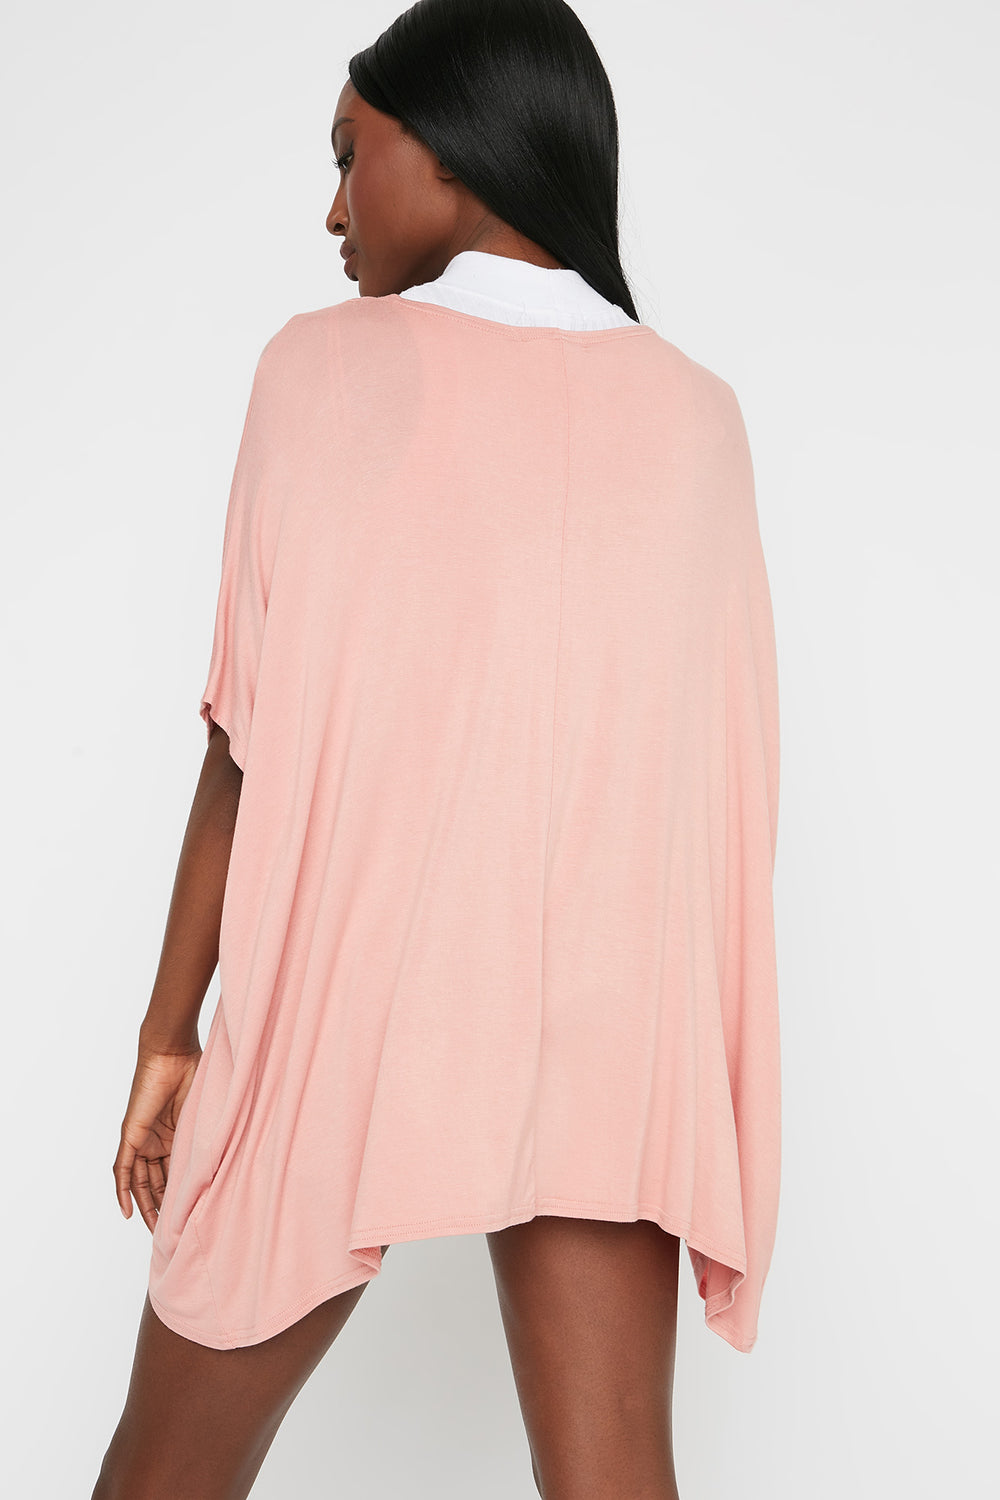 Oversized Short Sleeve Cardigan Light Pink